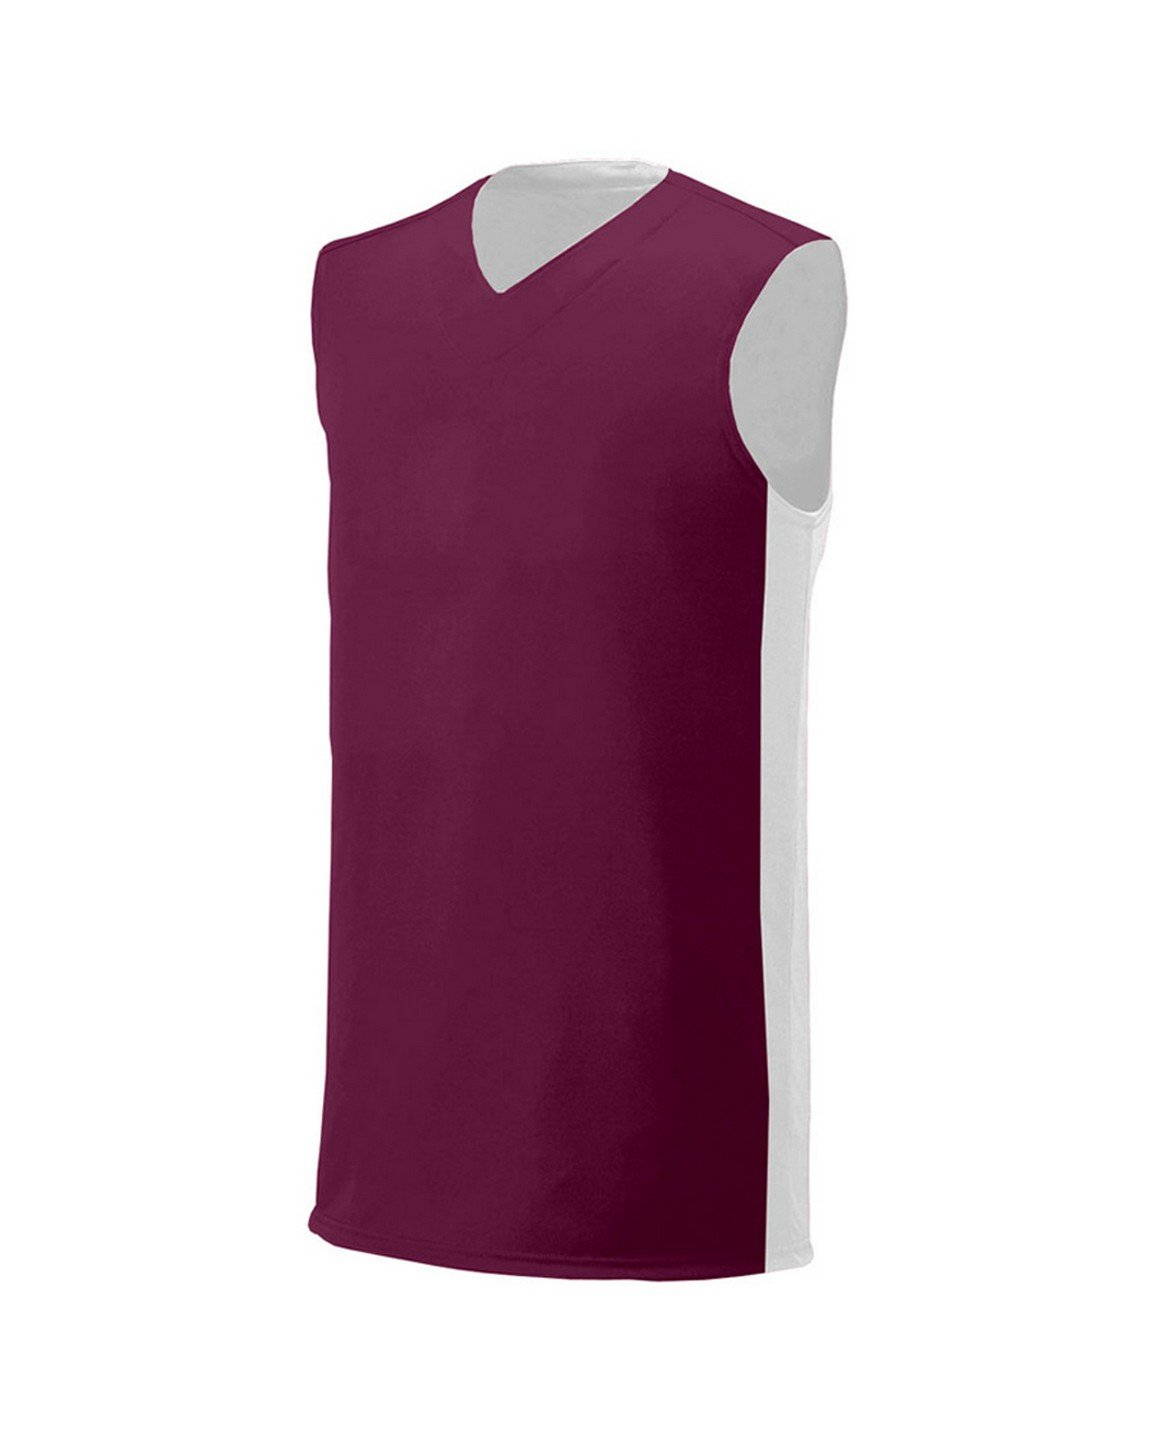 A4 Boy's Reversible Moisture Management Muscle Maroon White